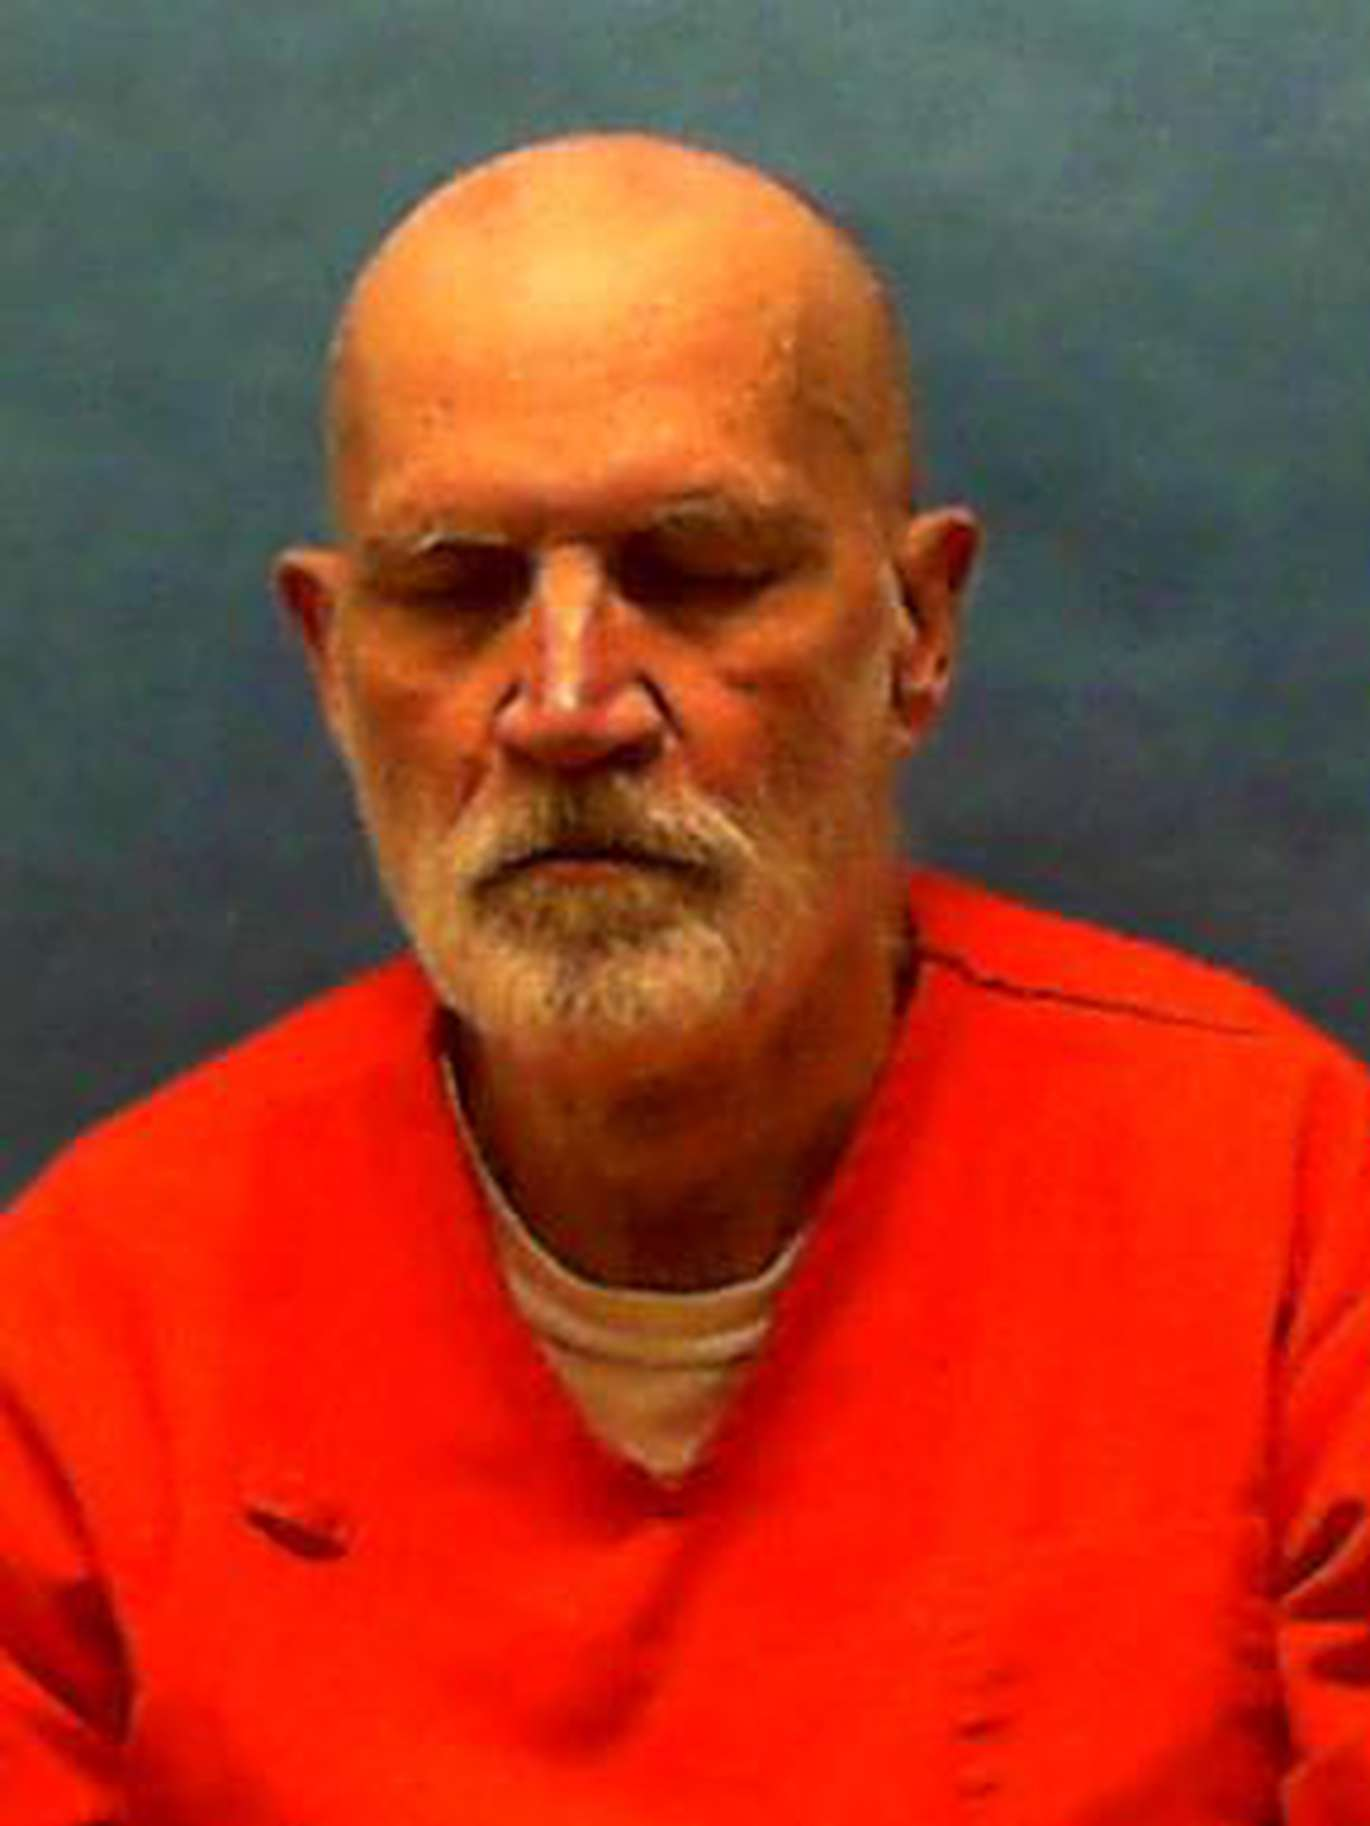 James Rose was sentenced to death on May 13, 1977 for murdering the eight-year-old daughter of his former girlfriend in October 1976. Rose was the last person seen with the girl at a bowling alley where she was with her mother. He's been on death row since May 1977.